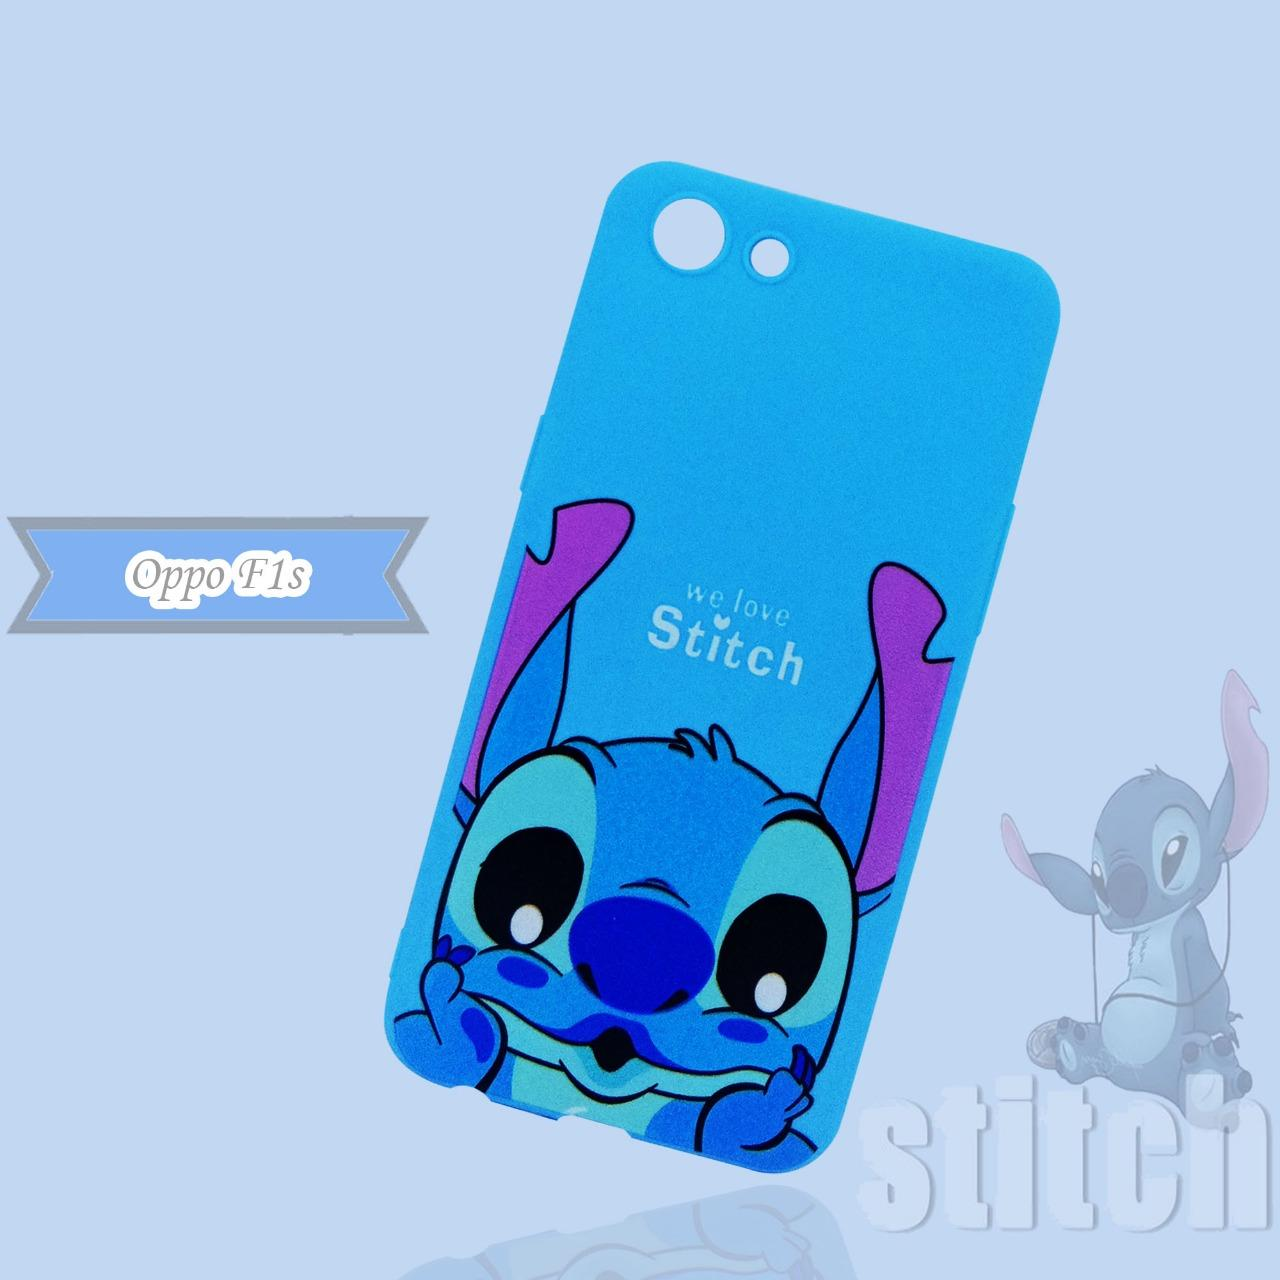 Marintri Case Oppo F1s New Fashion Stitch Cute